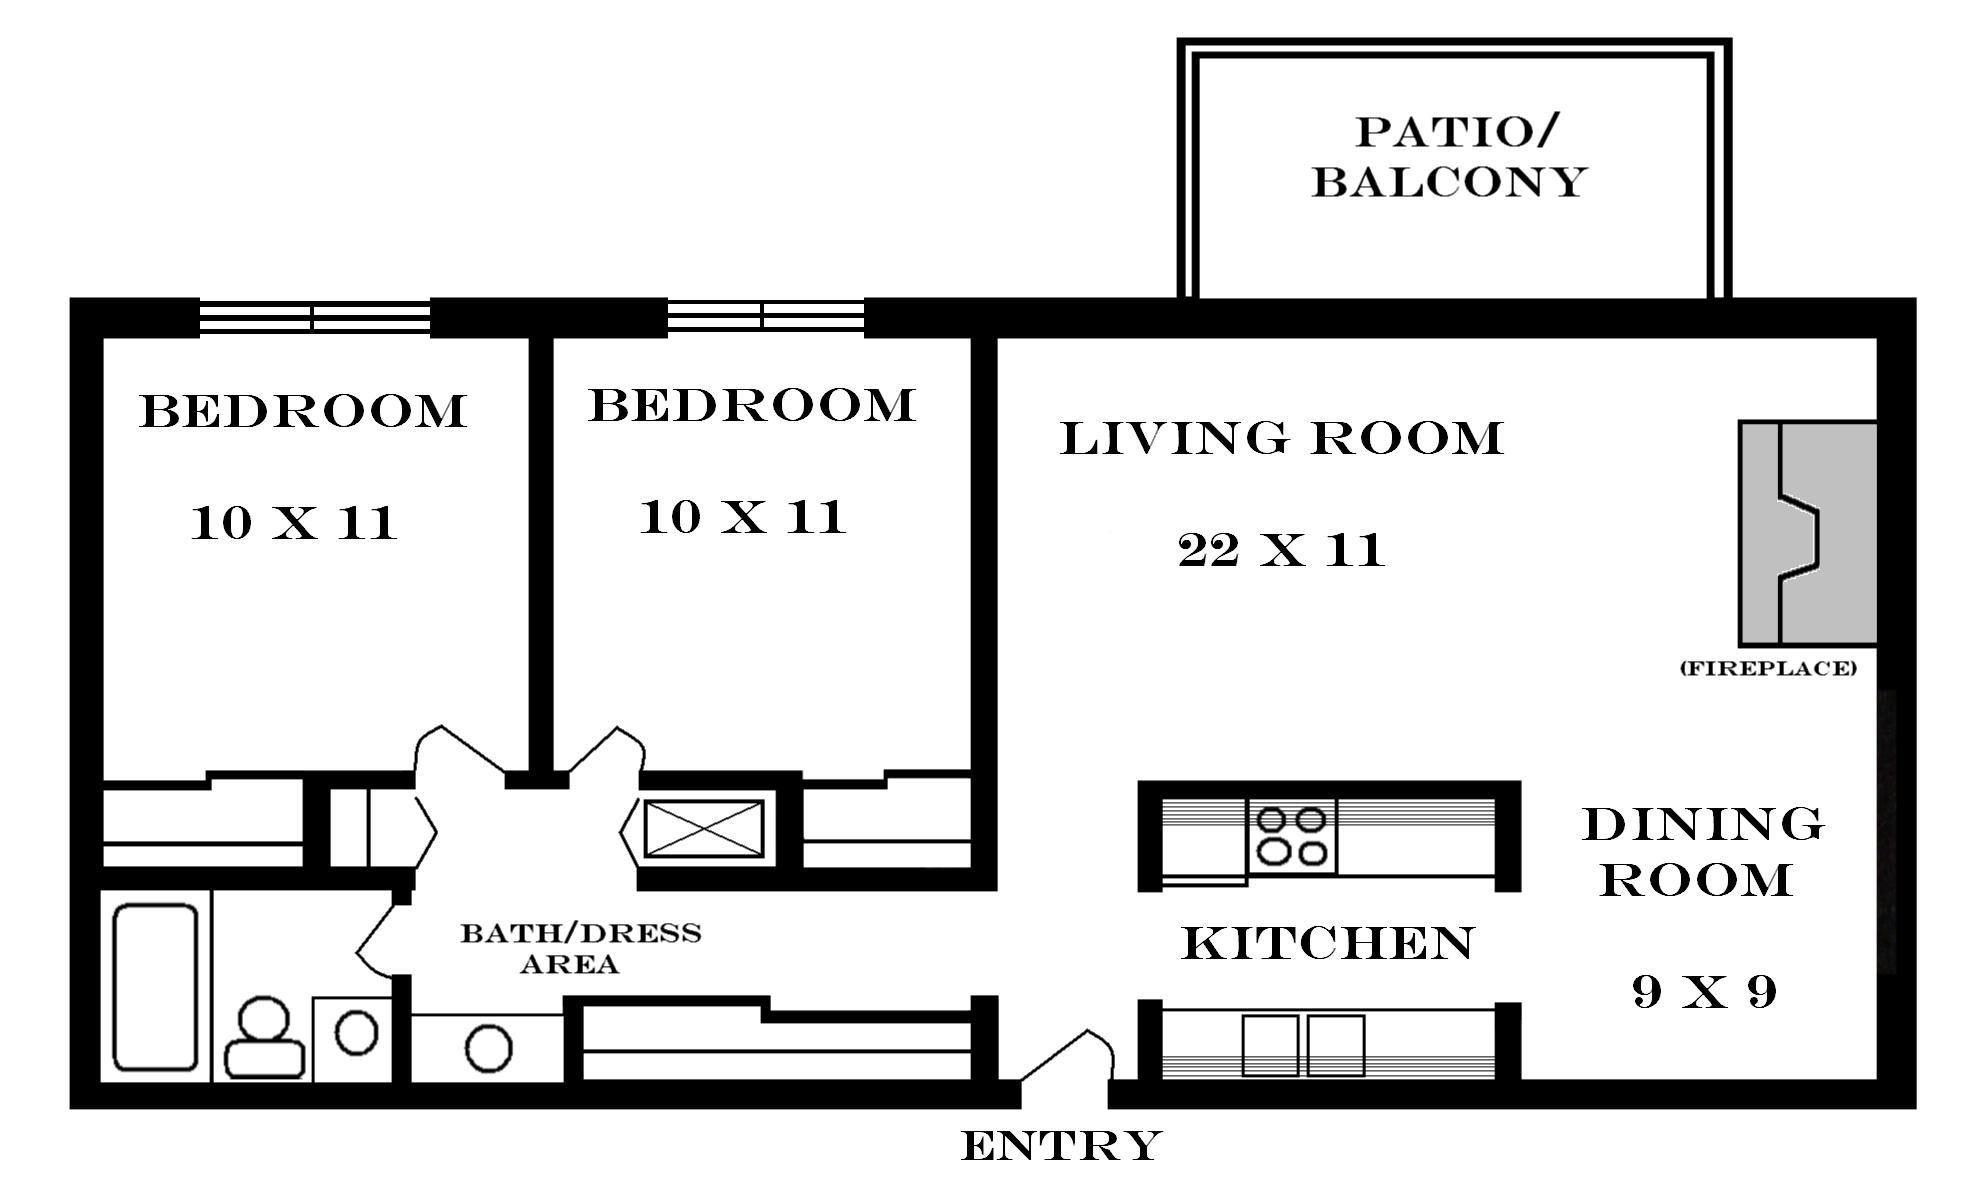 Small house floor plans 2 bedrooms 900 tiny houses for Floor plans for 3 bedroom flats